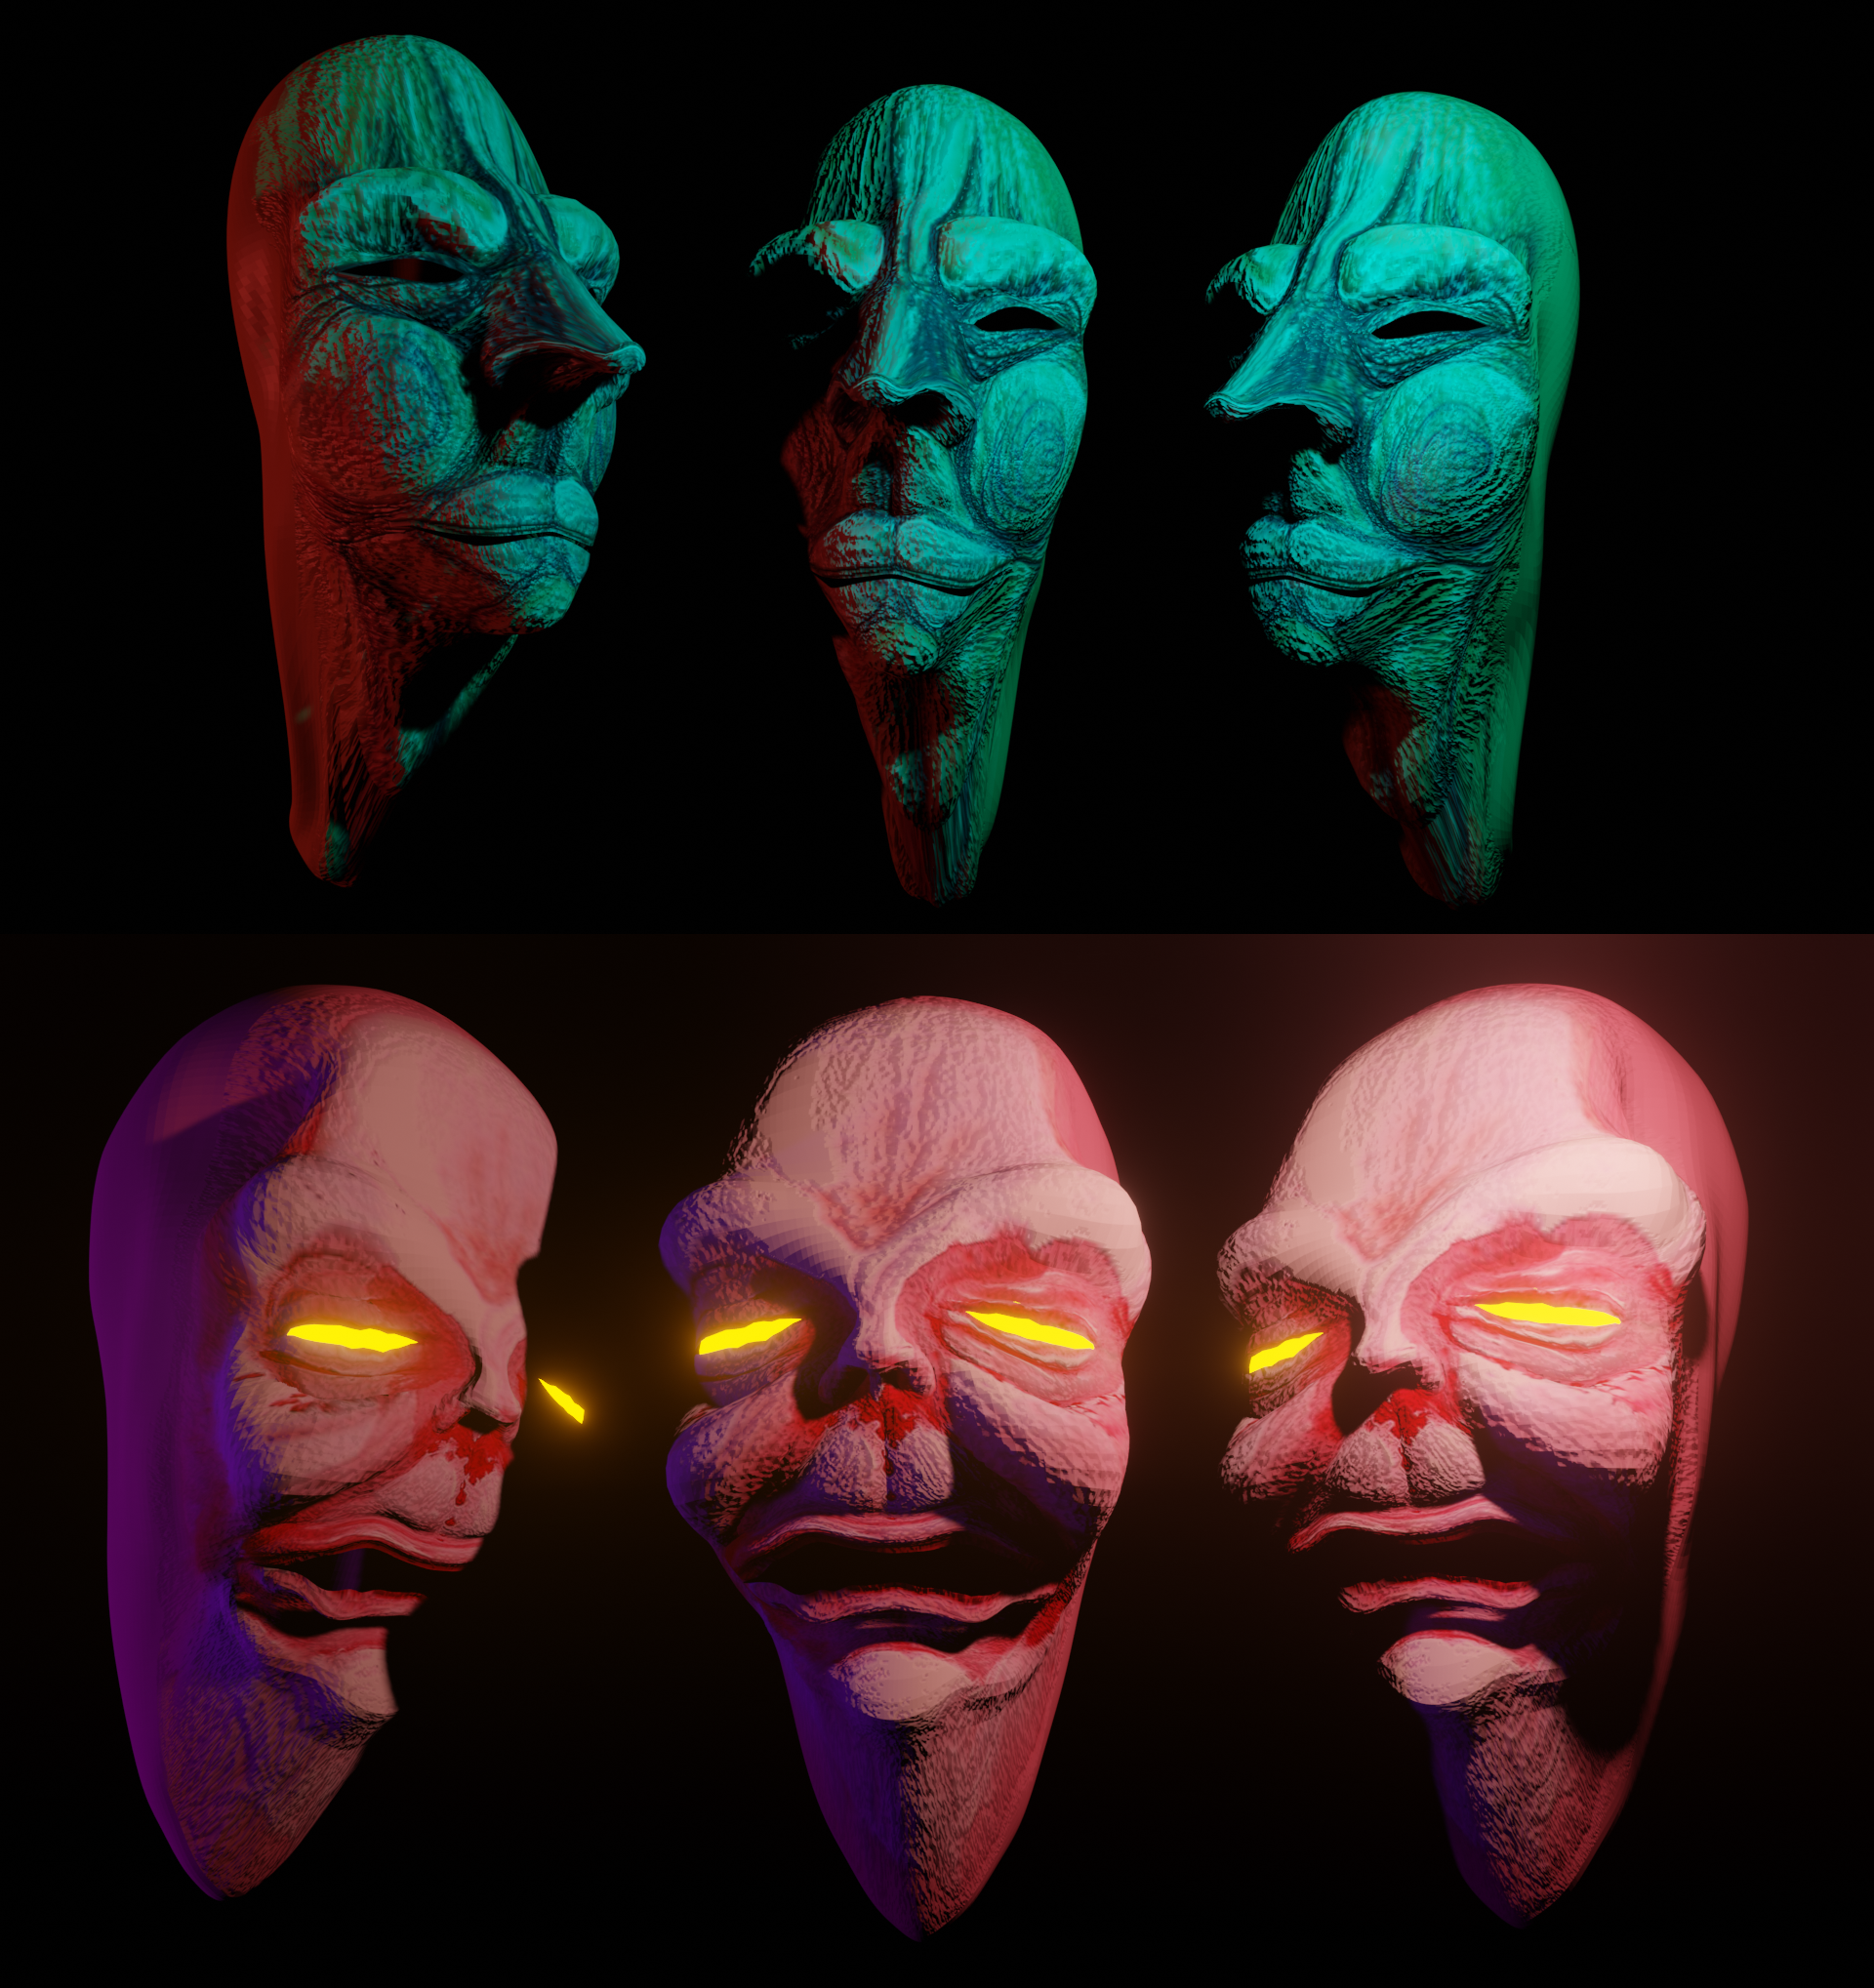 Handpainted UV textures experiment